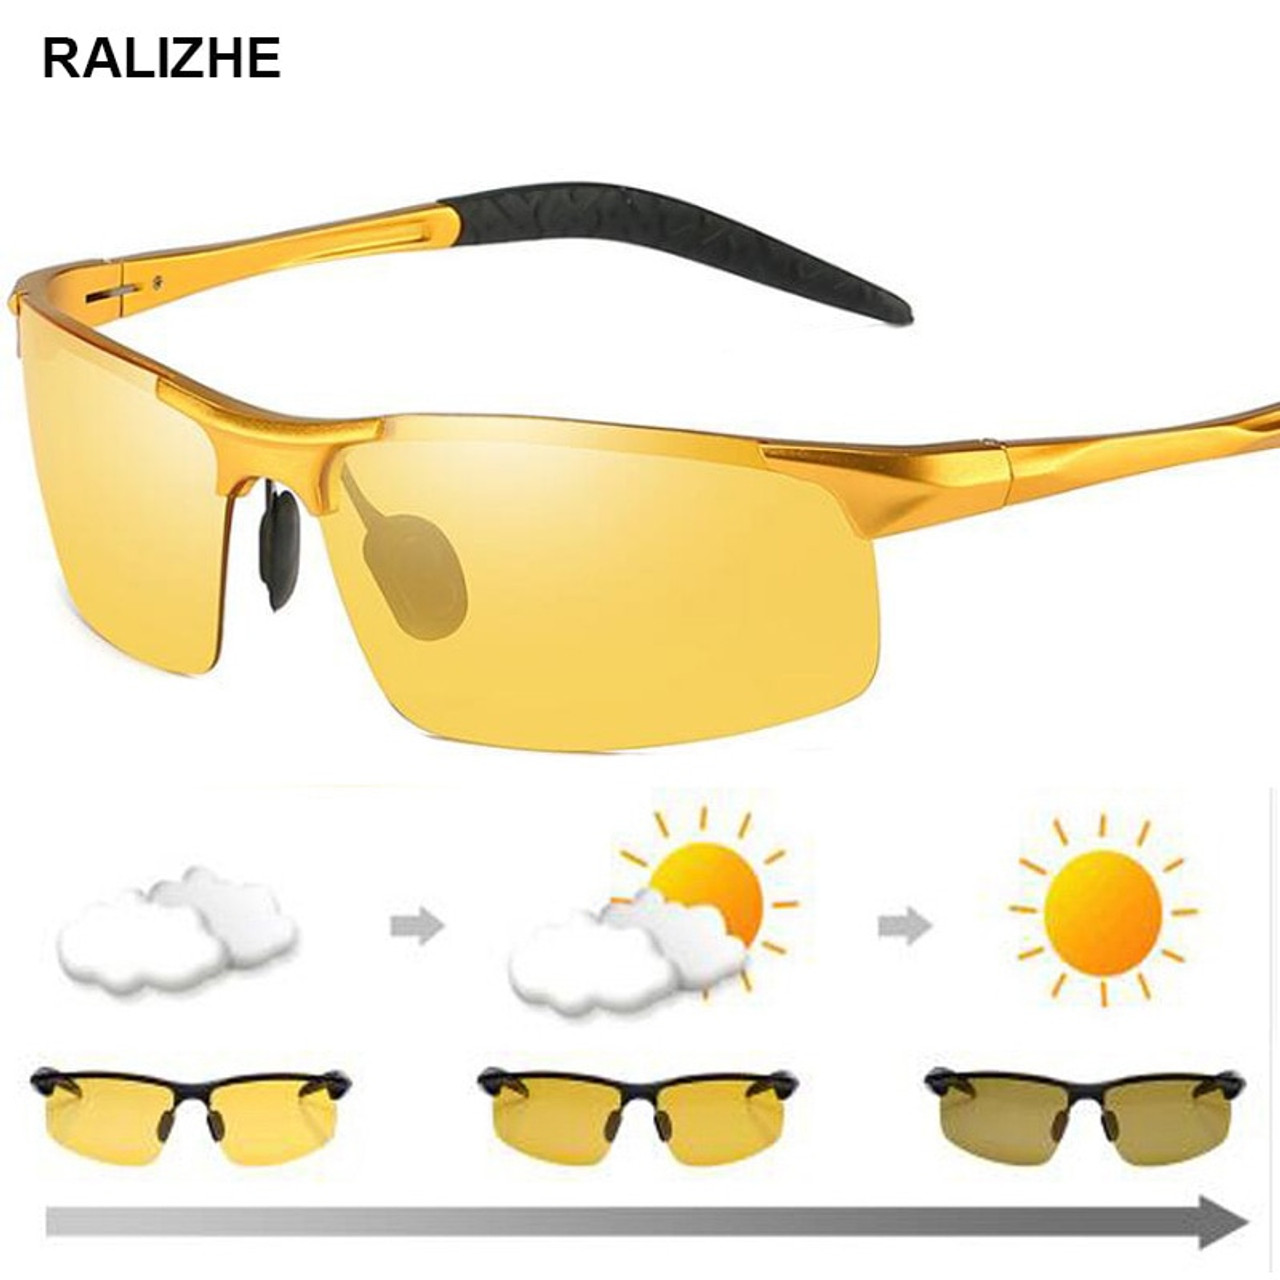 cdaef1501d8d4 High Quality Men Day Night Vision Glasses Polarized Photochromic  Discoloration Lens Anti-glare UV400 Yellow ...